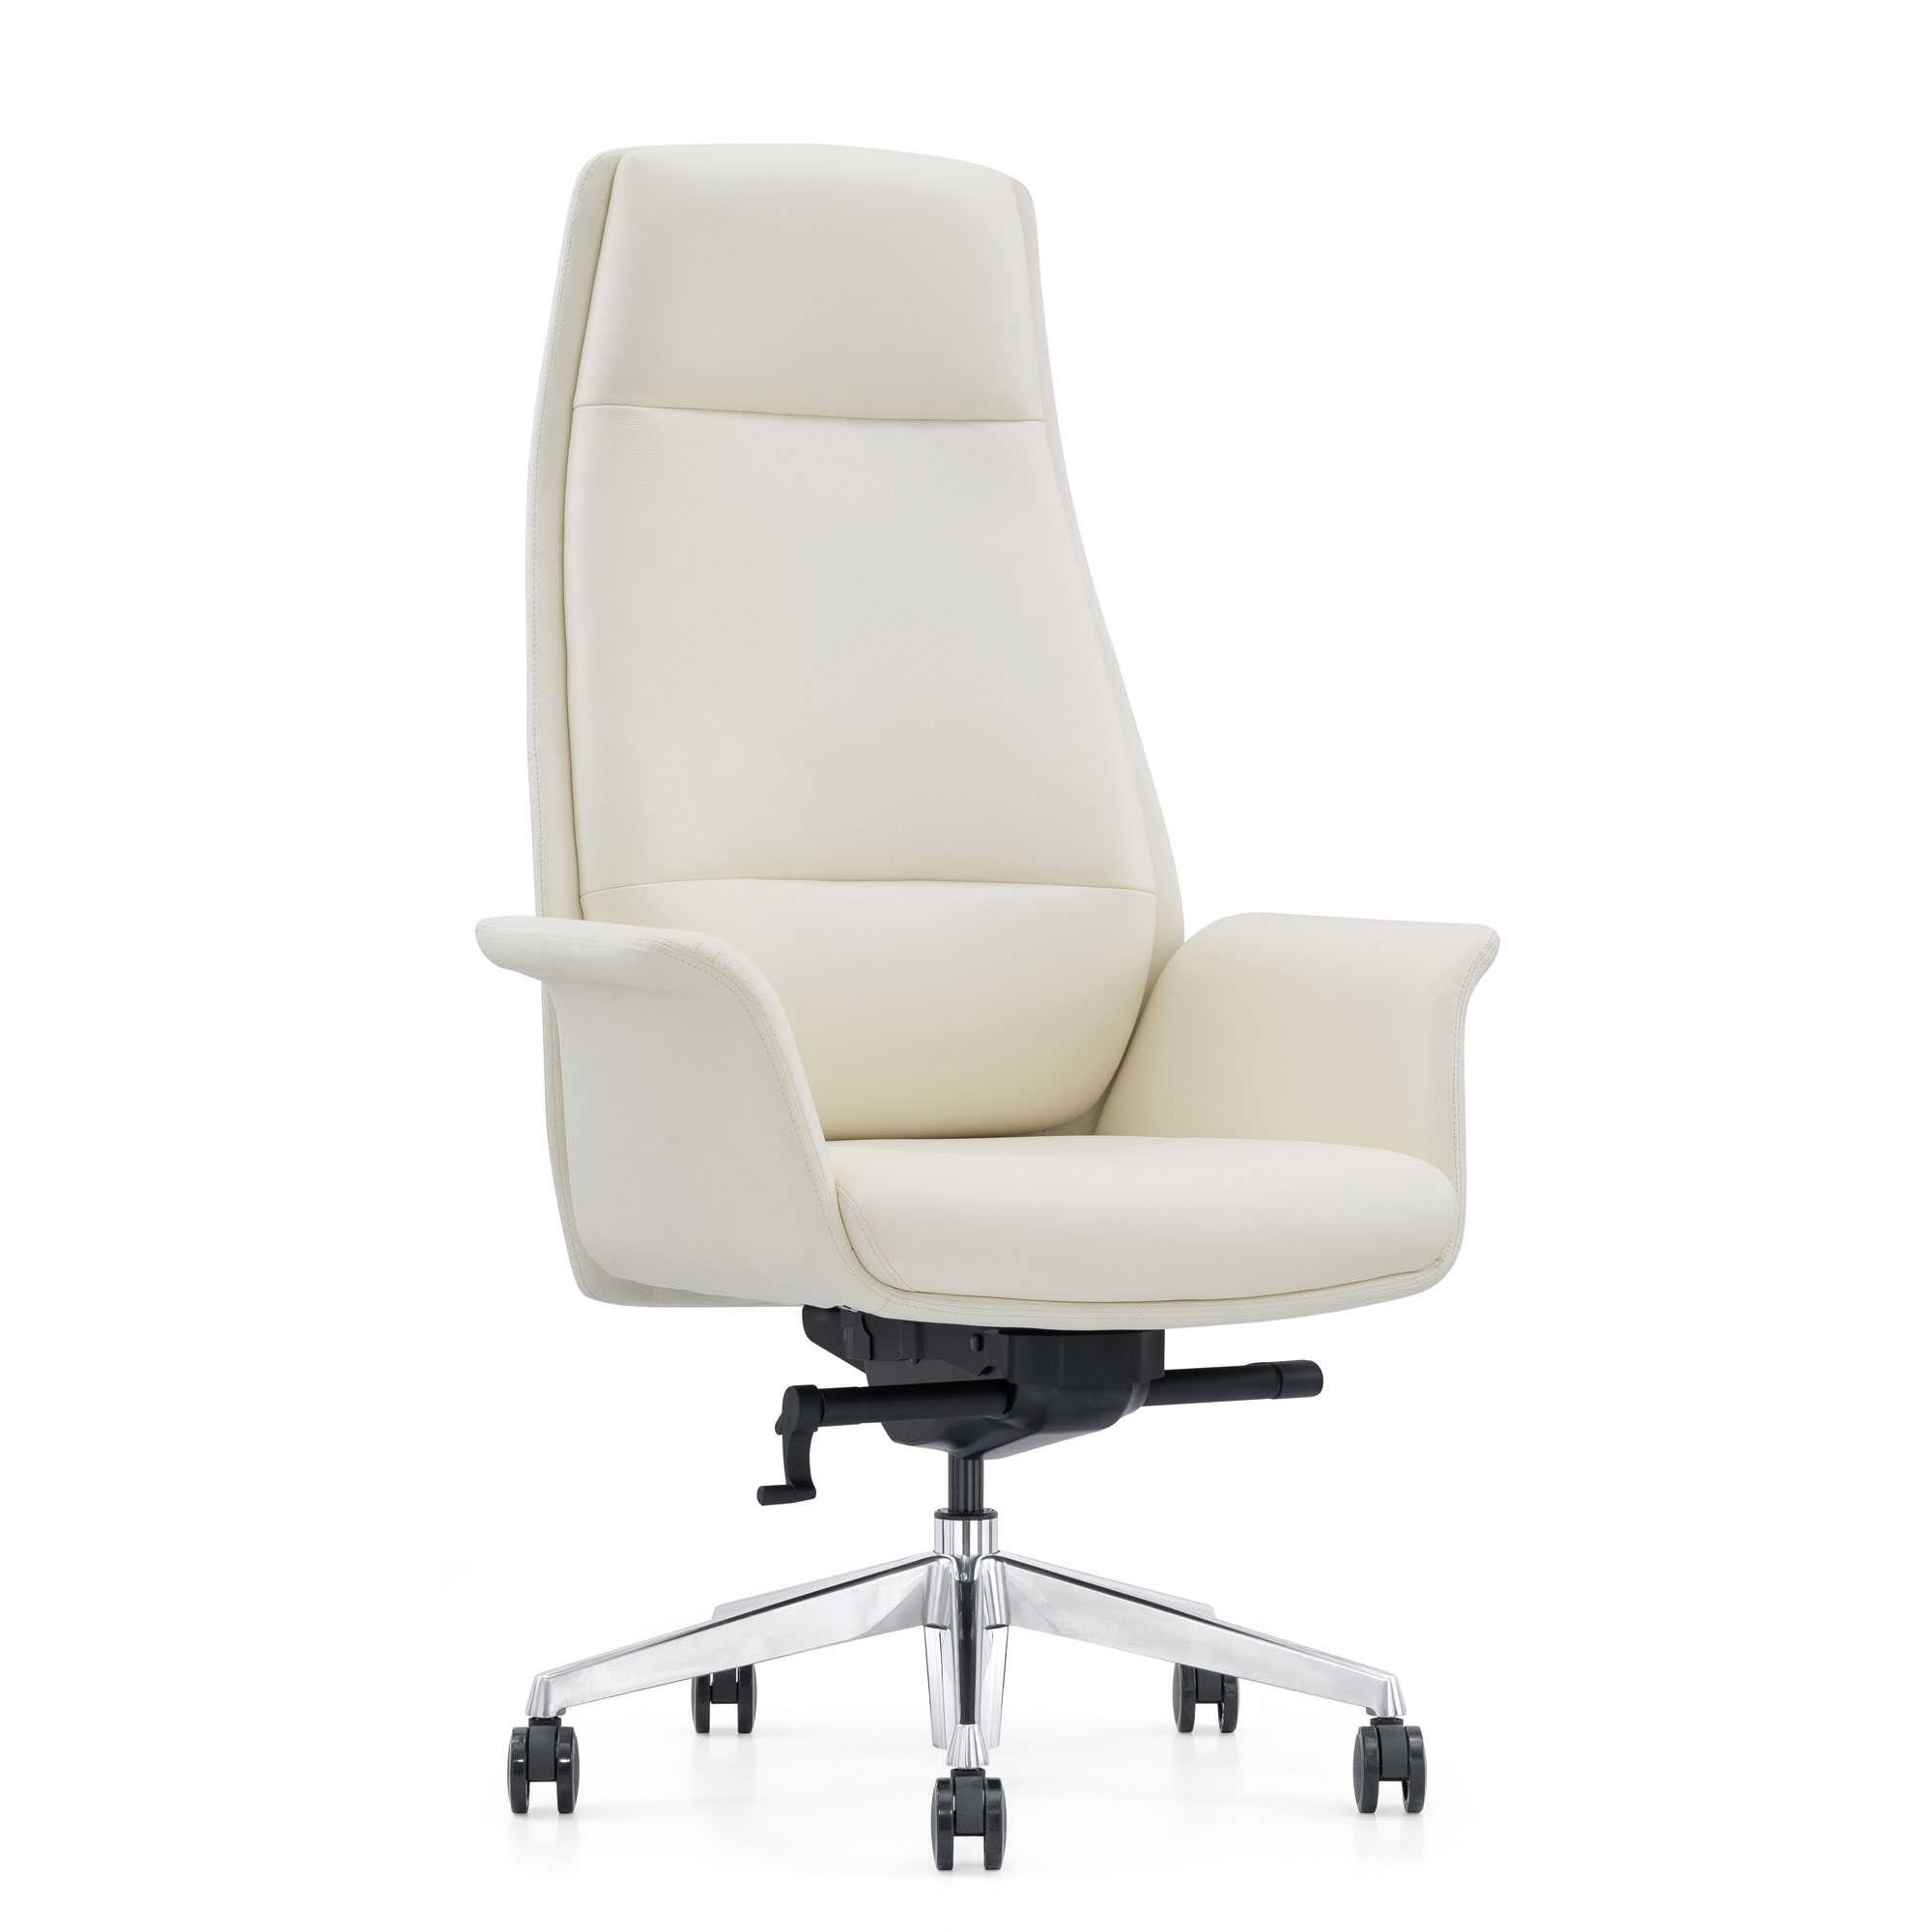 Off-White Leather Chair with Adjustable Height